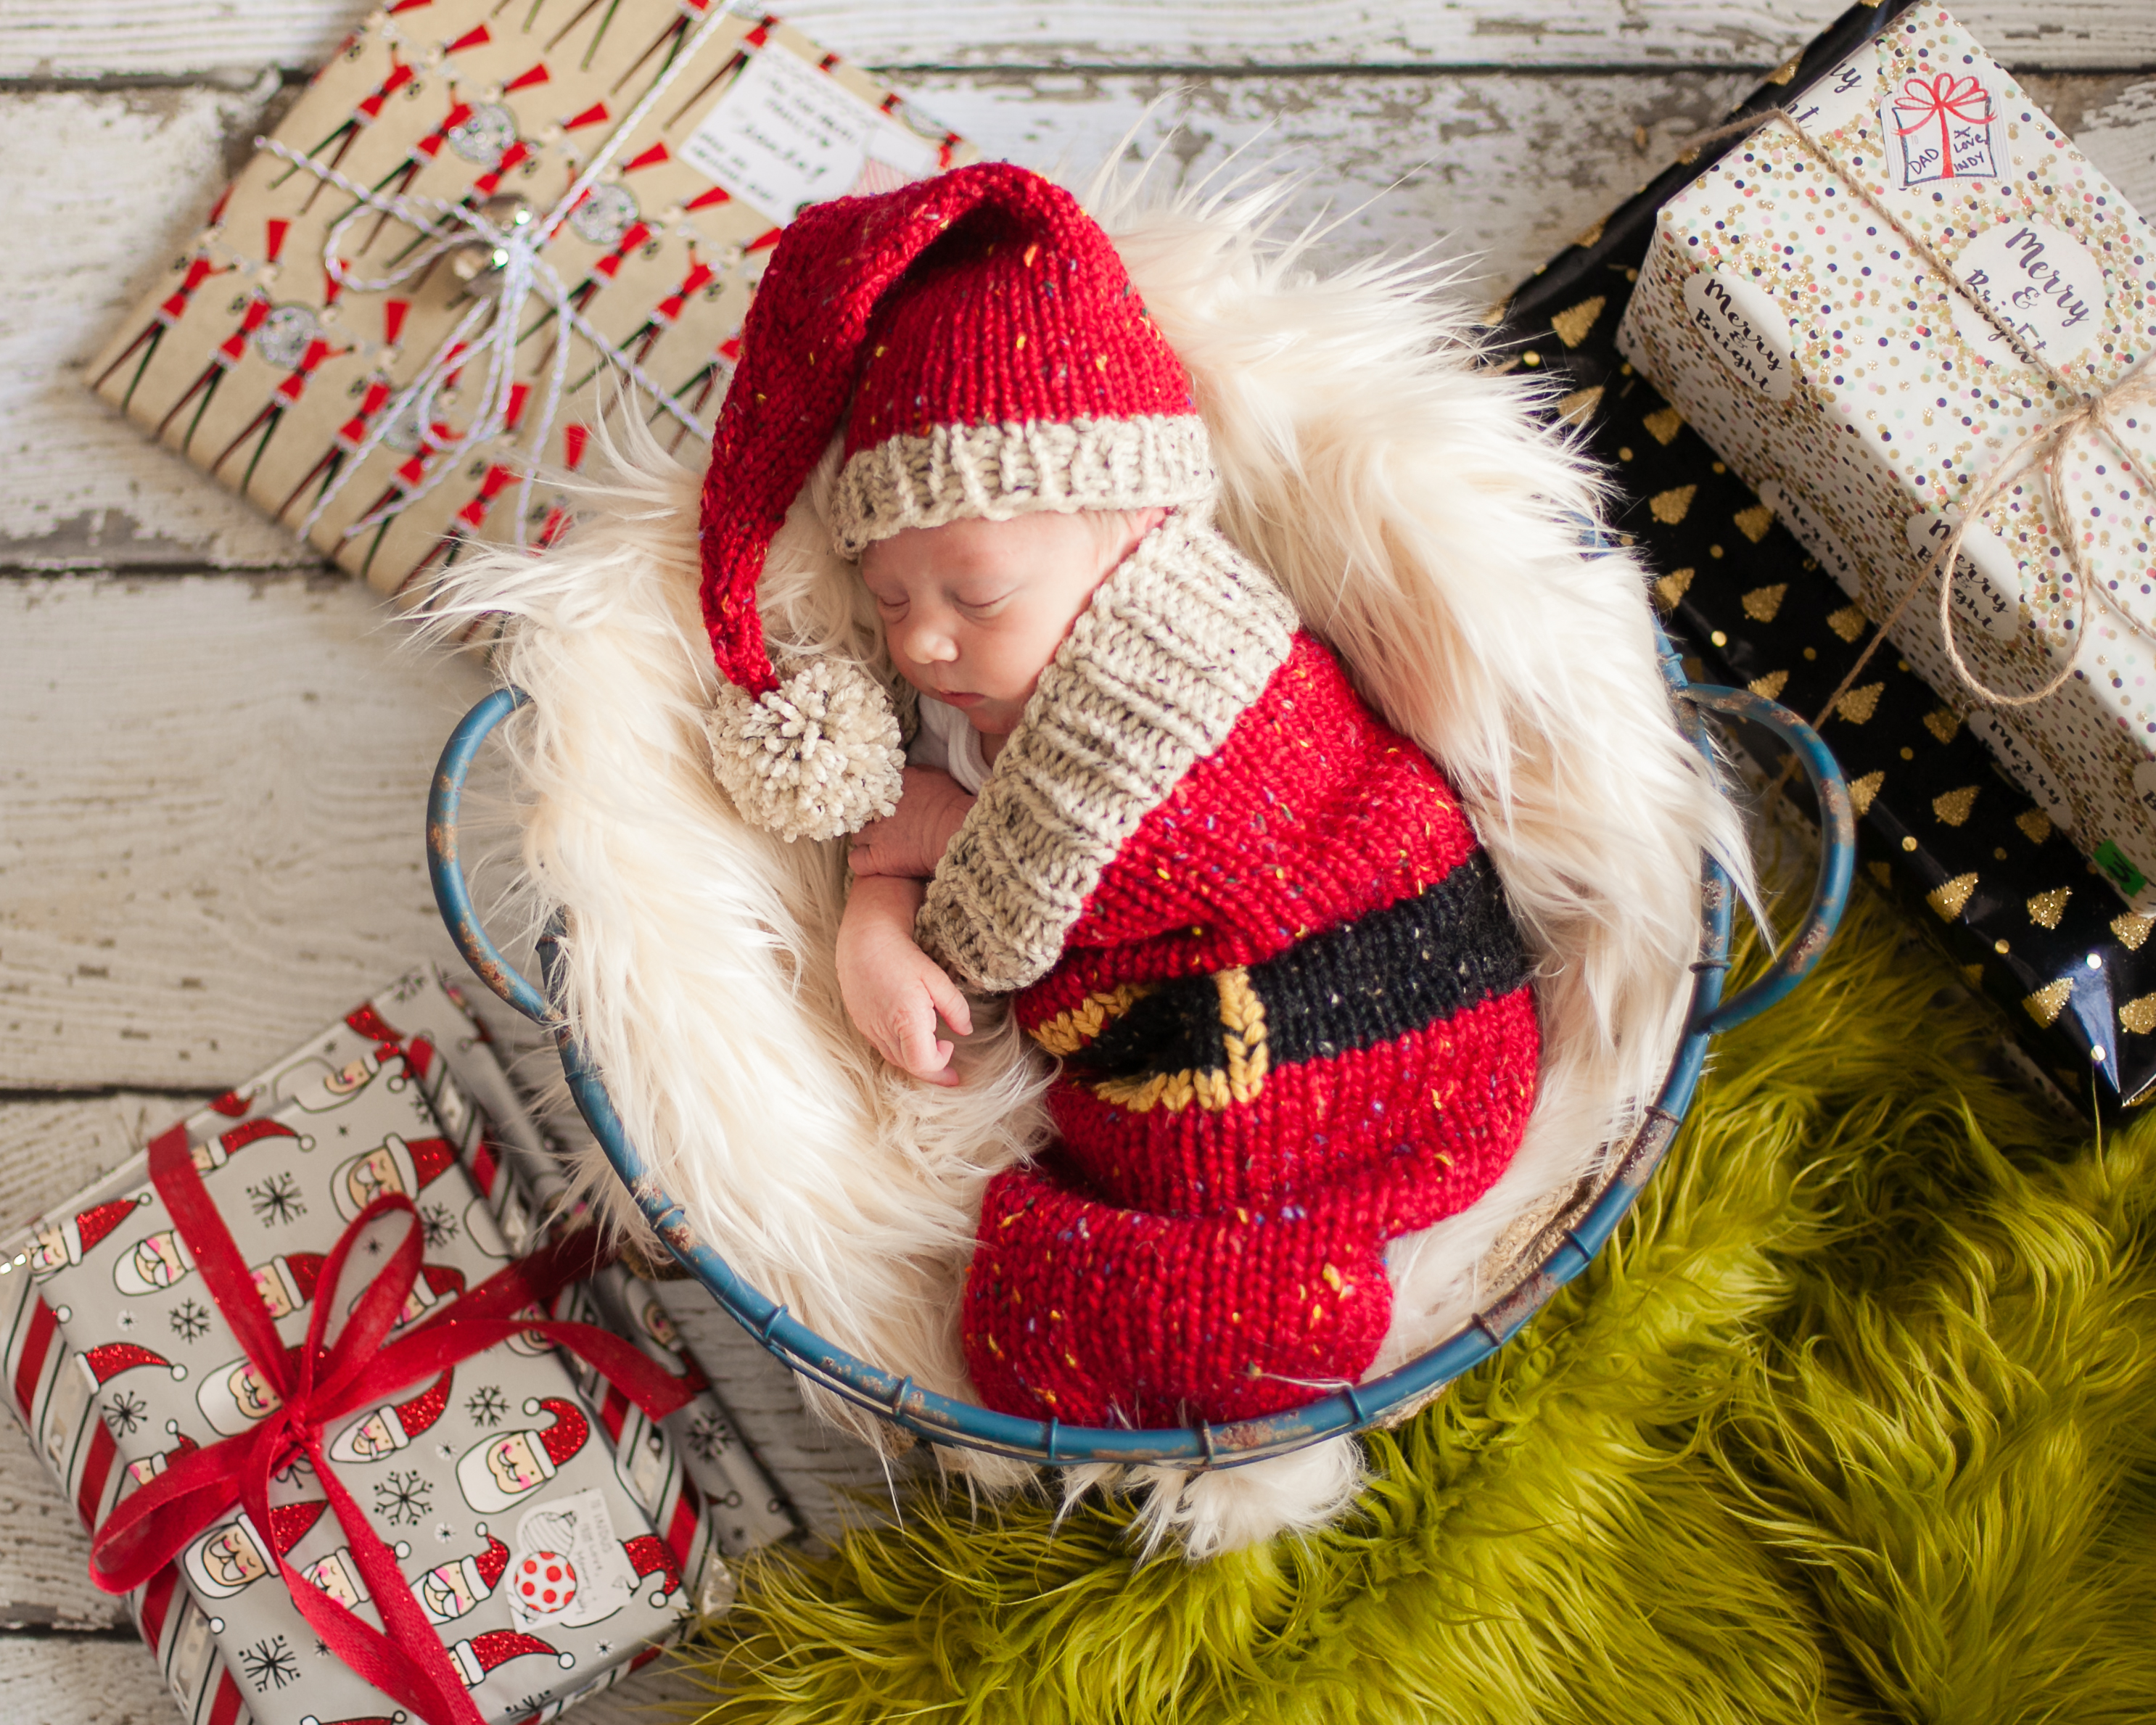 87172300855 Loom Knit Santa Christmas Cocoon and Santa Hat Pattern. Make This Newborn  Swaddler and Elf Hat for Baby Using This PDF Loom Knitting PATTERN.